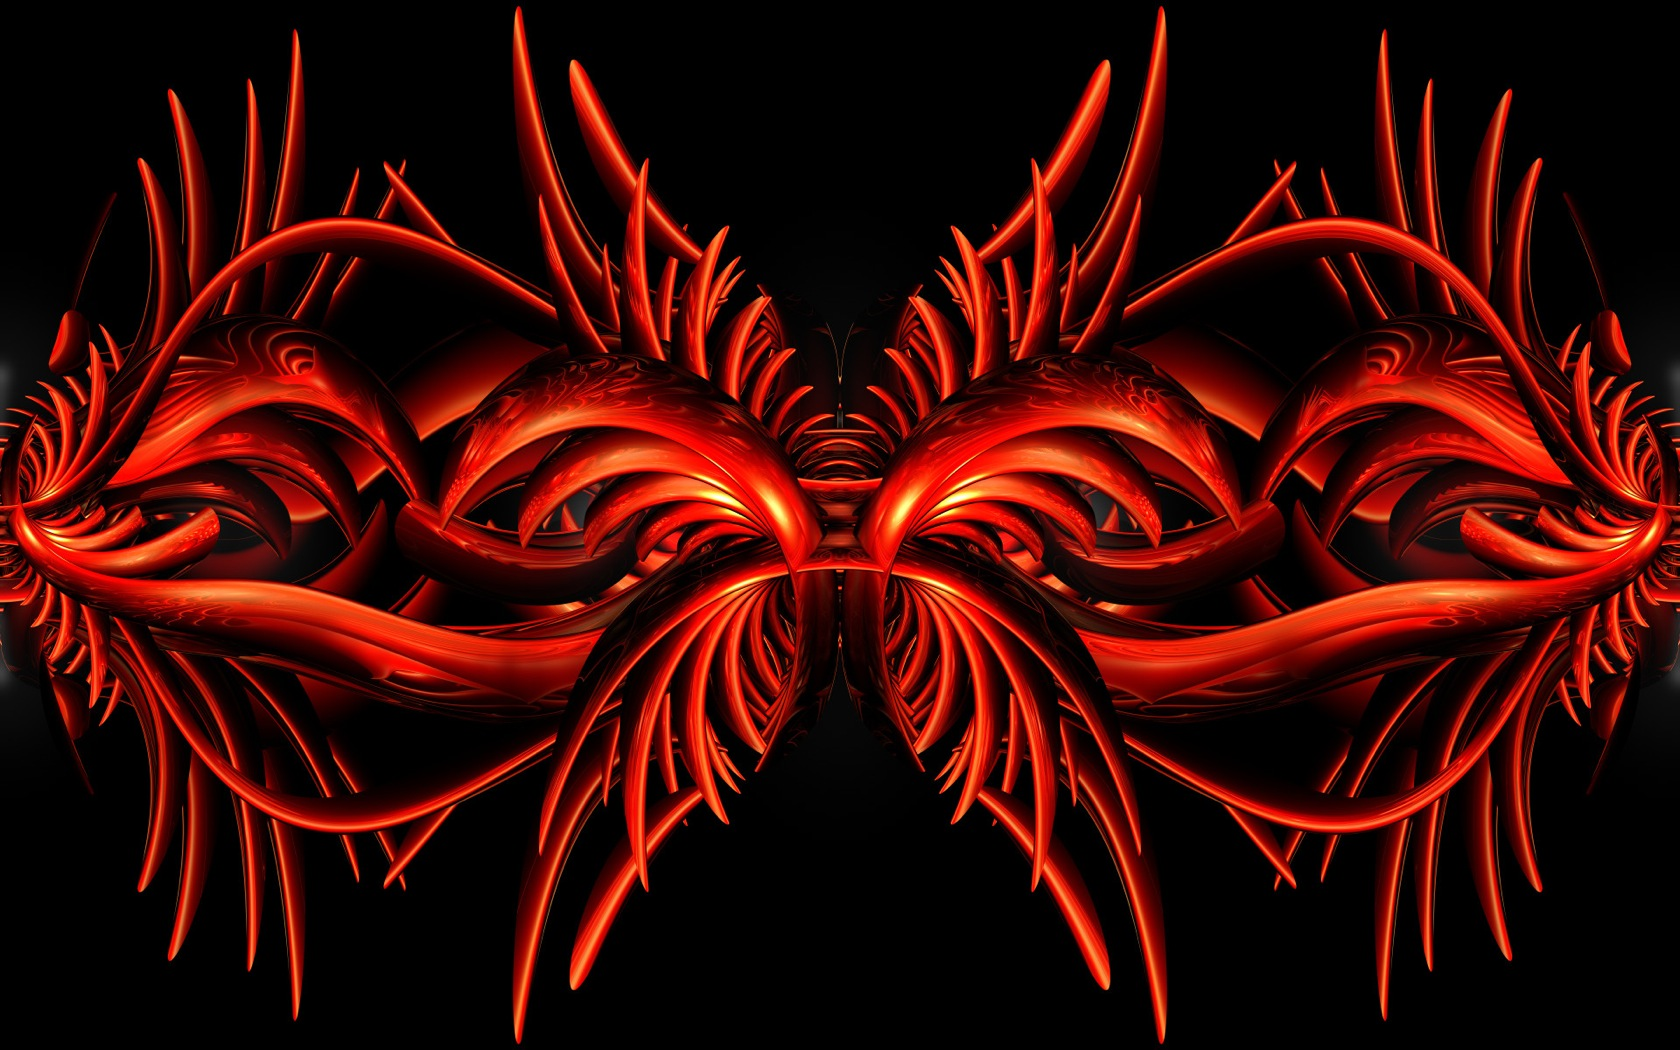 dark red abstract backgrounds hd pictures 4